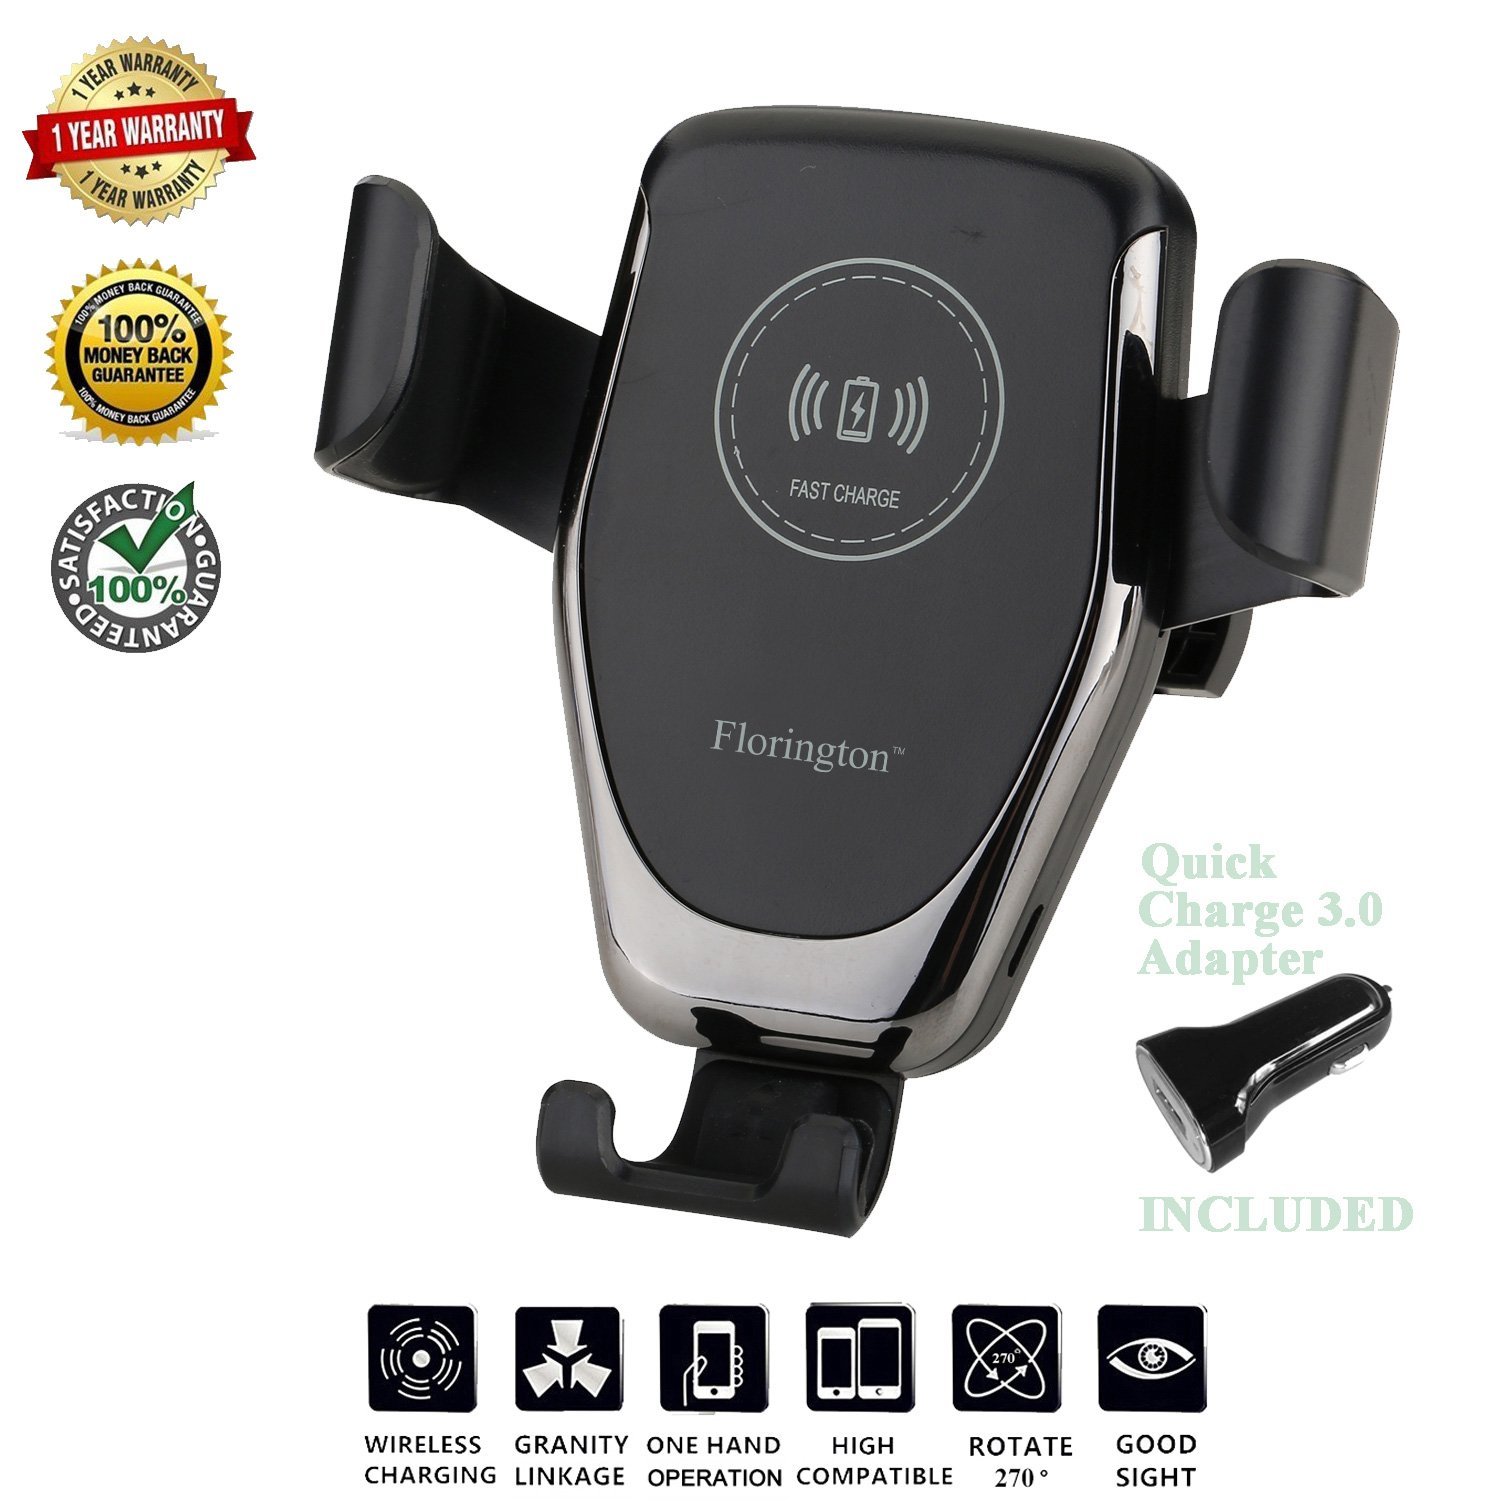 Florington Fast Qi Wireless Car Charger, Windshield/Air Vent 2-in-1 Mount Stand, 7.5W Apple iPhone X/8 Plus, 10W Samsung Galaxy S9/S9+/S8/S8+/S7, LG V30/V35/G7 Quick Charging Adapter by Florington (Image #1)